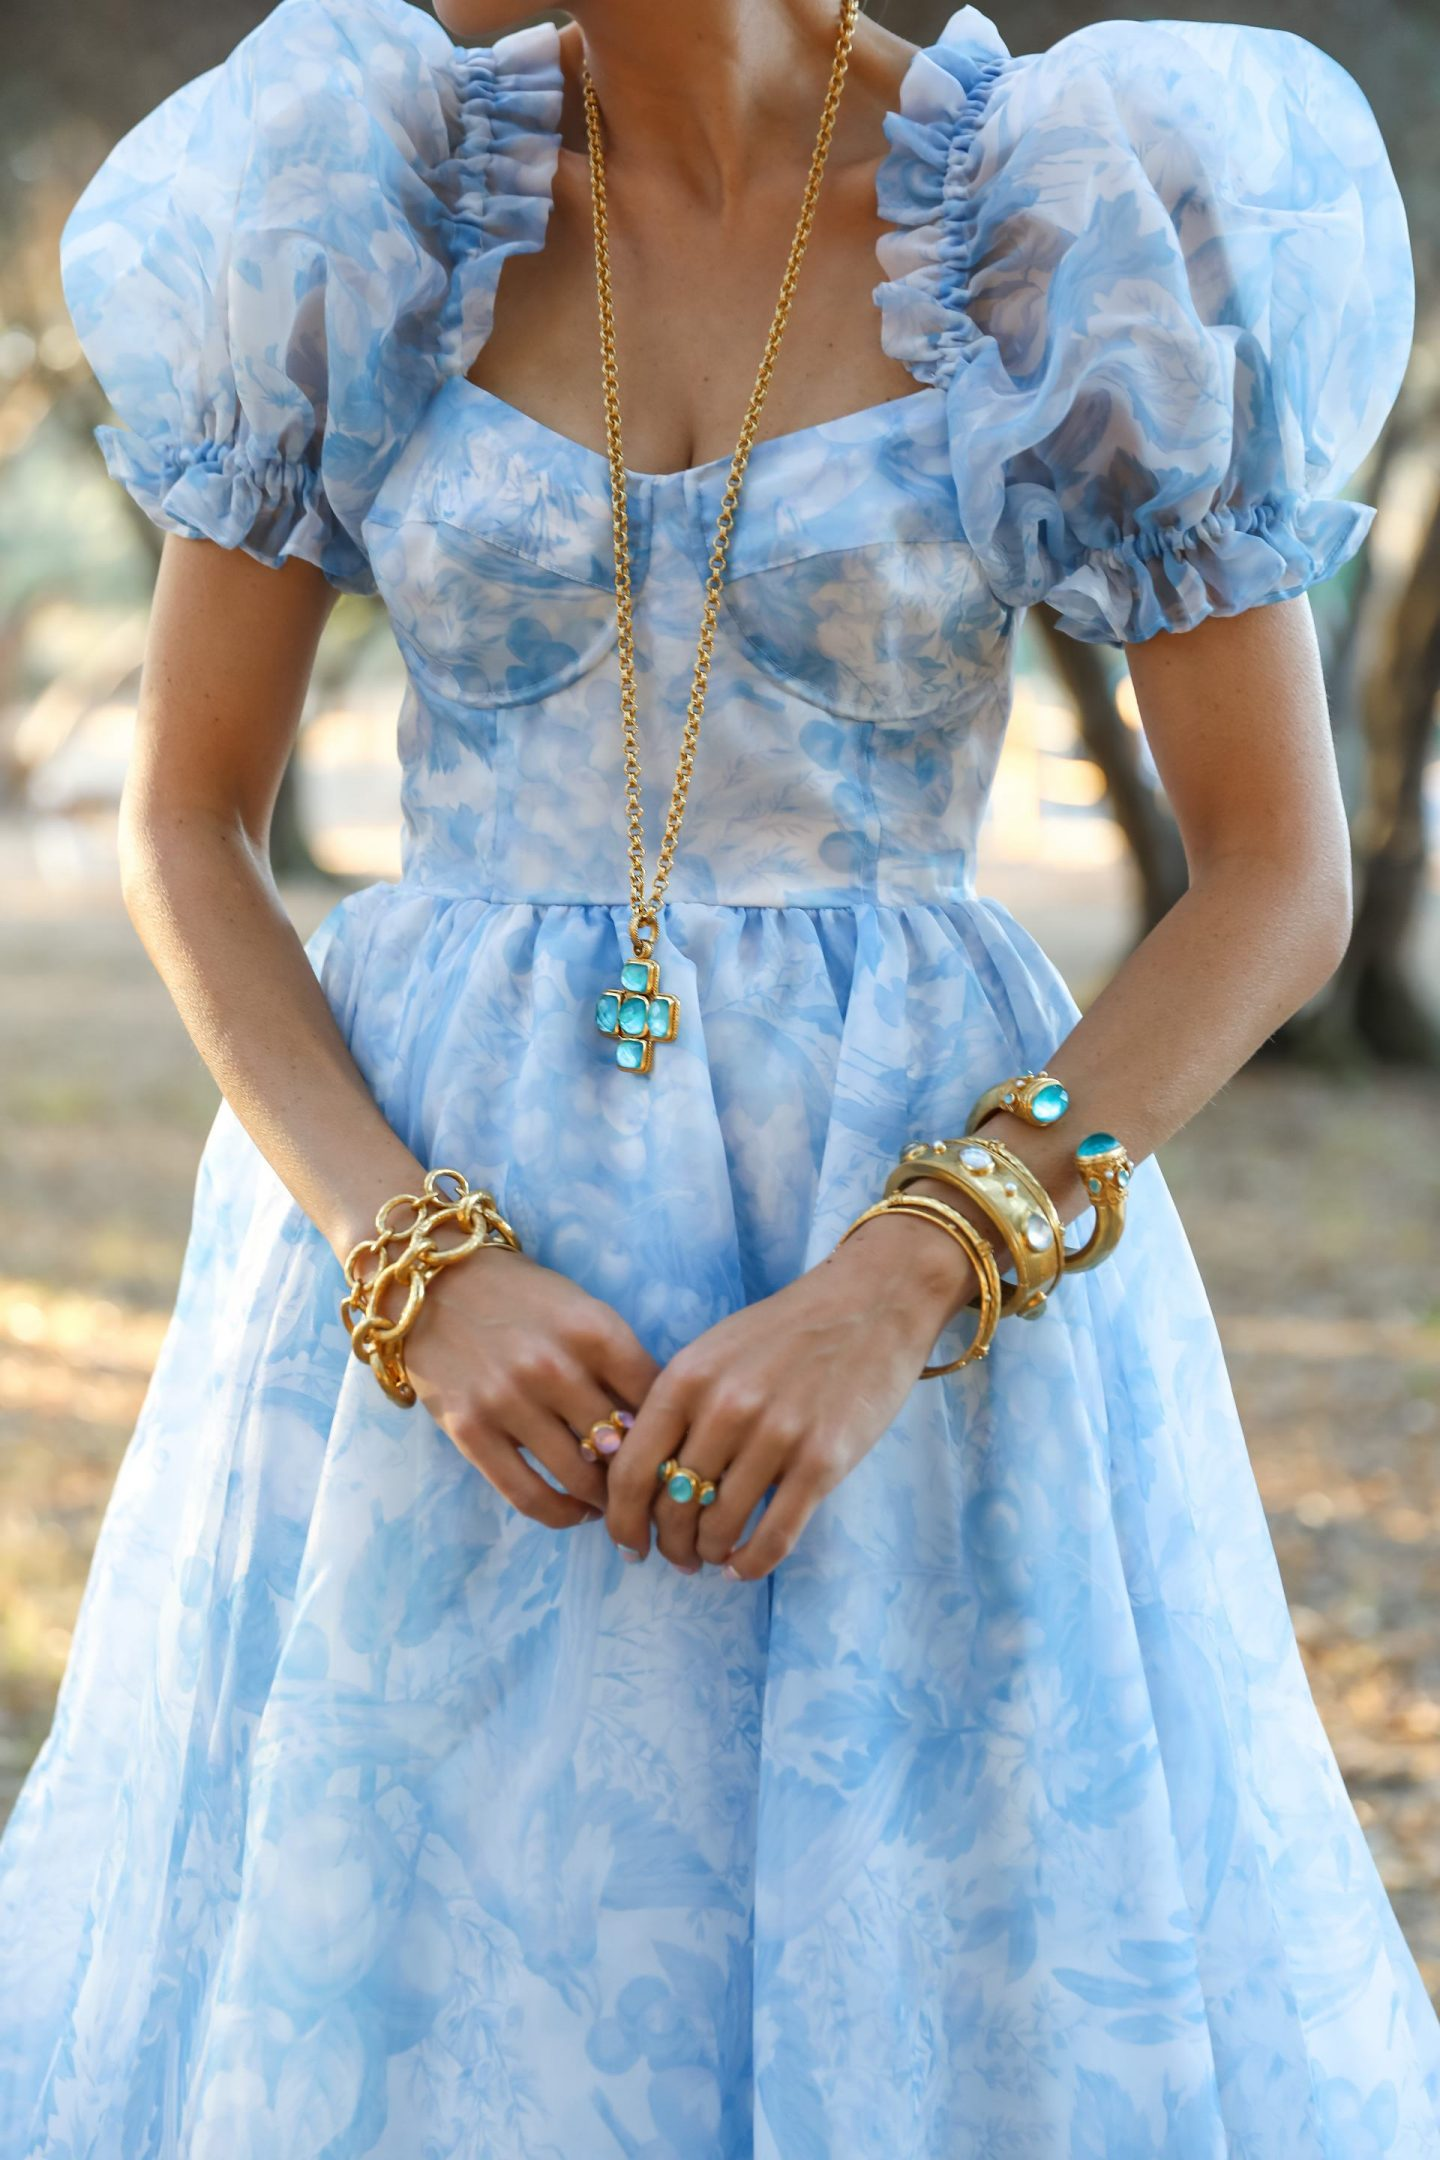 Summer accessories feminine whimsical style inspiration, Julie Vos jewelry and Selkie dress. By Veronica Levy, Lombard & Fifth.